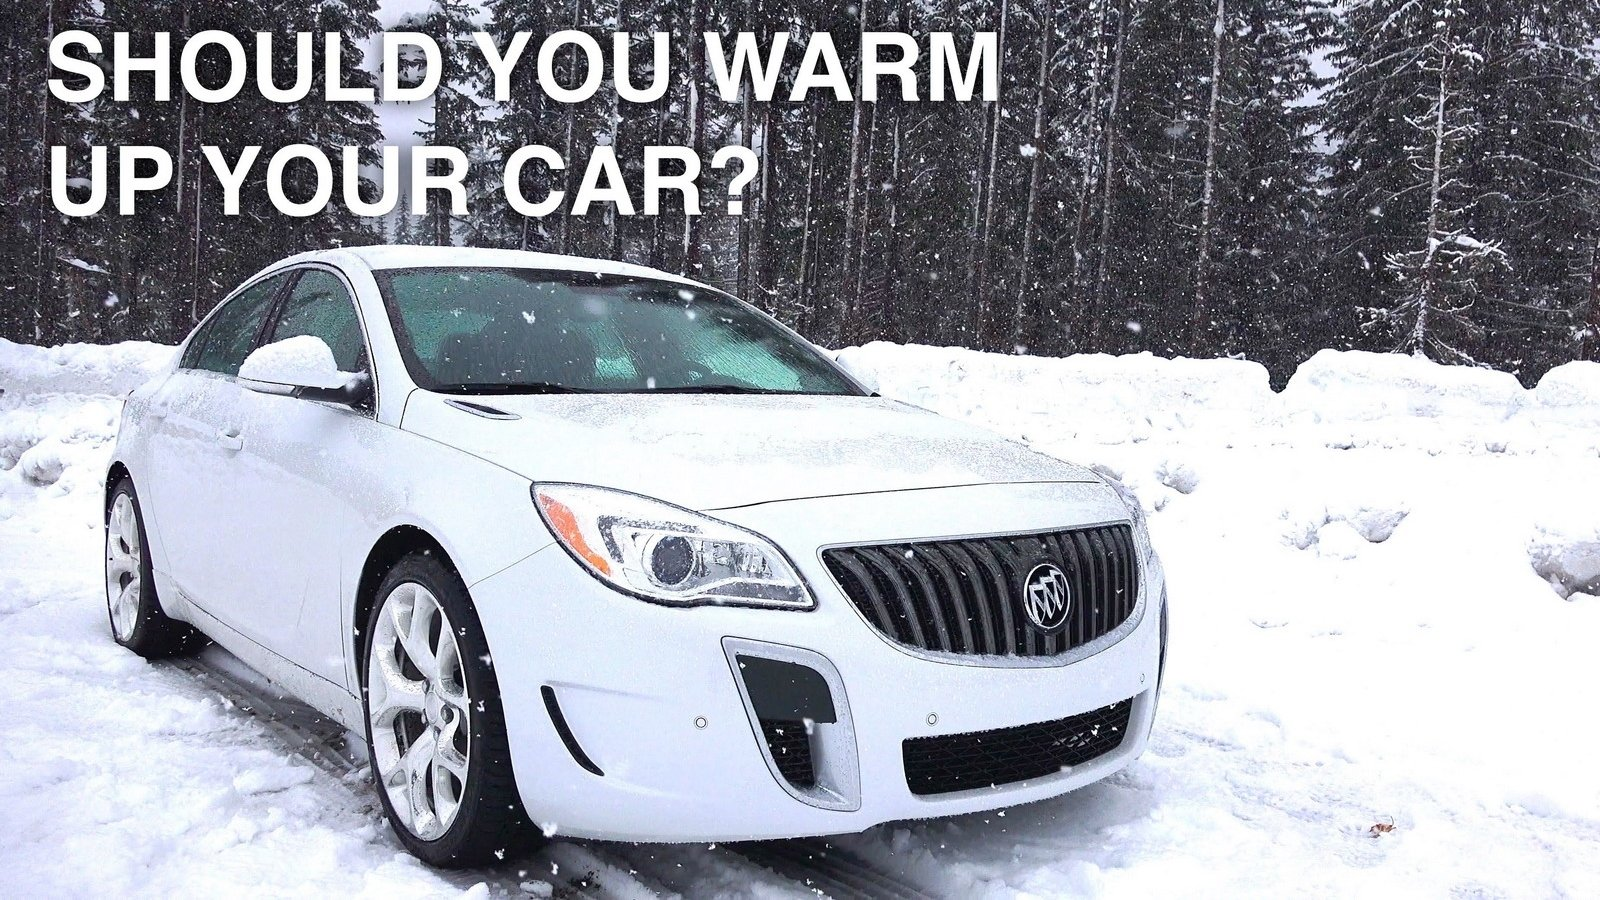 Does A Car Need To Warm Up Before Driving